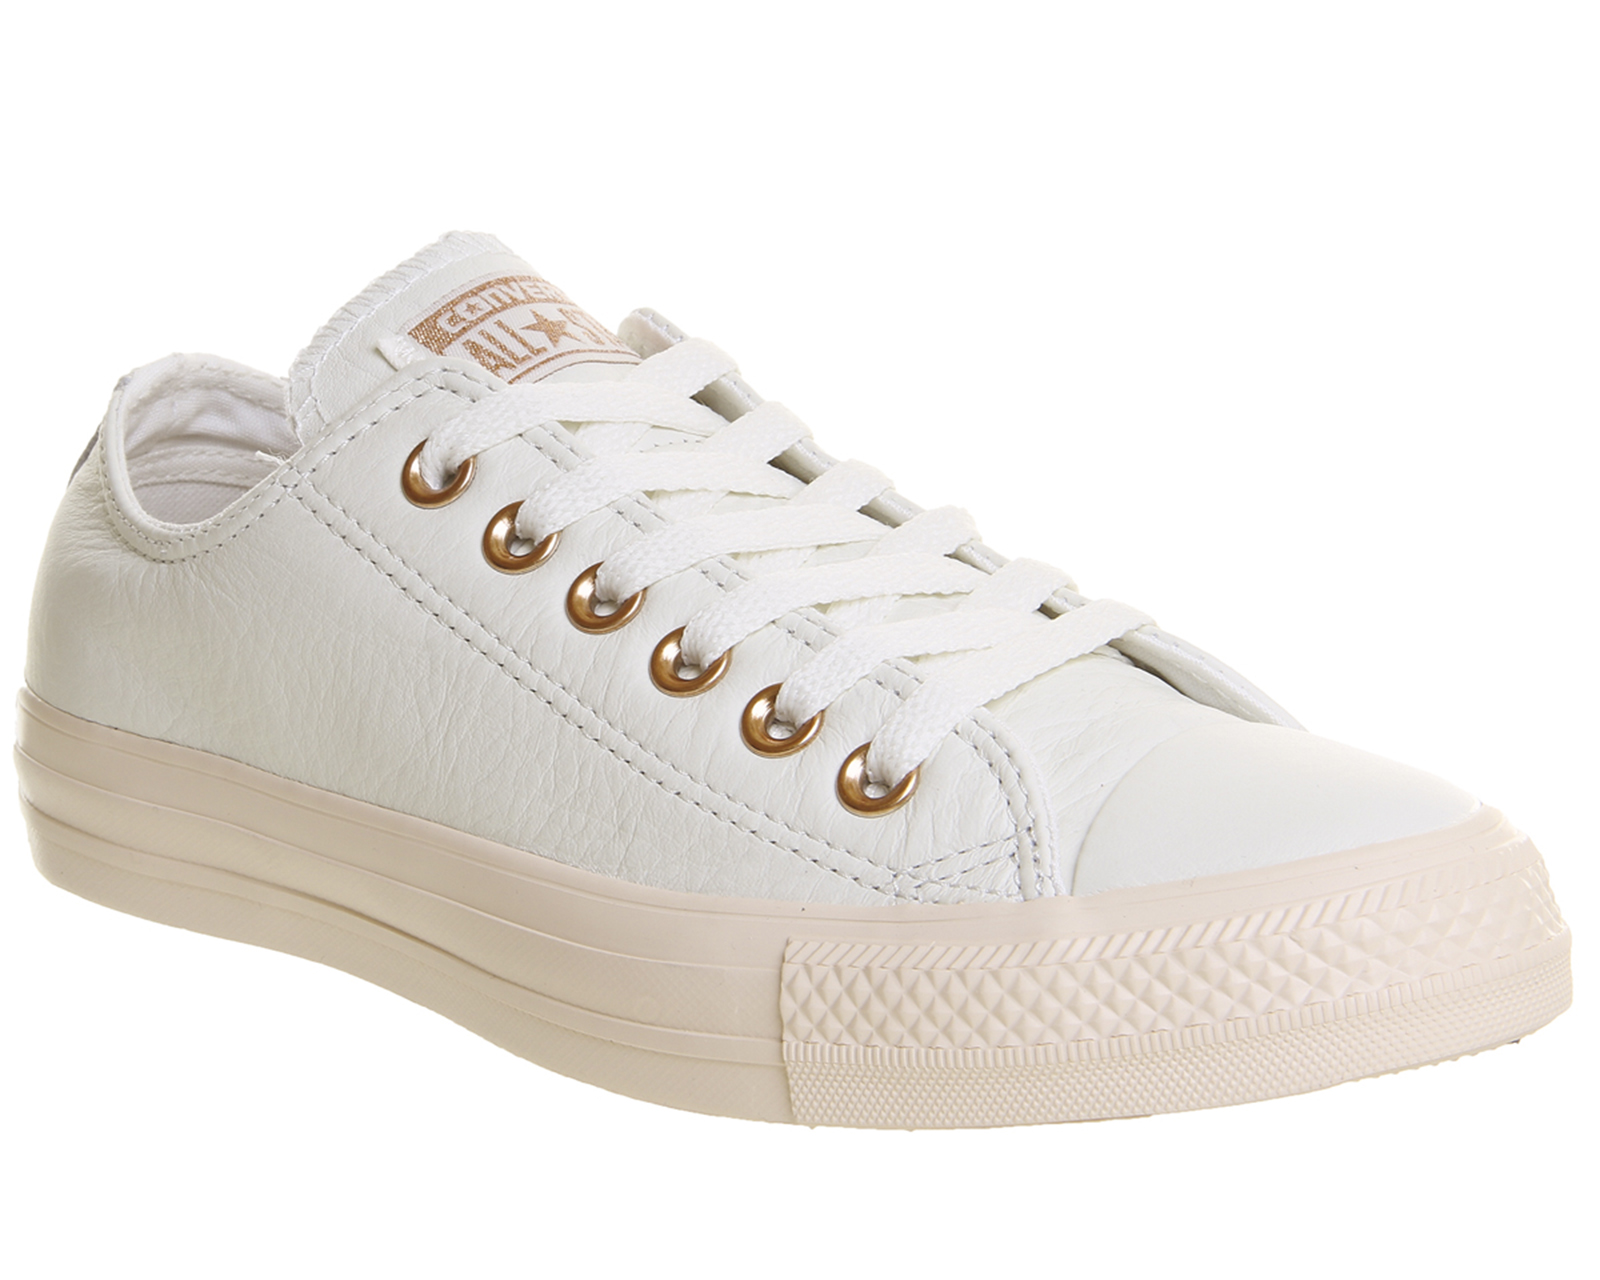 DONNA CONVERSE ALL STAR BASSA IN PELLE PASTELLO ROSA Egret Blush oro Esclusivo